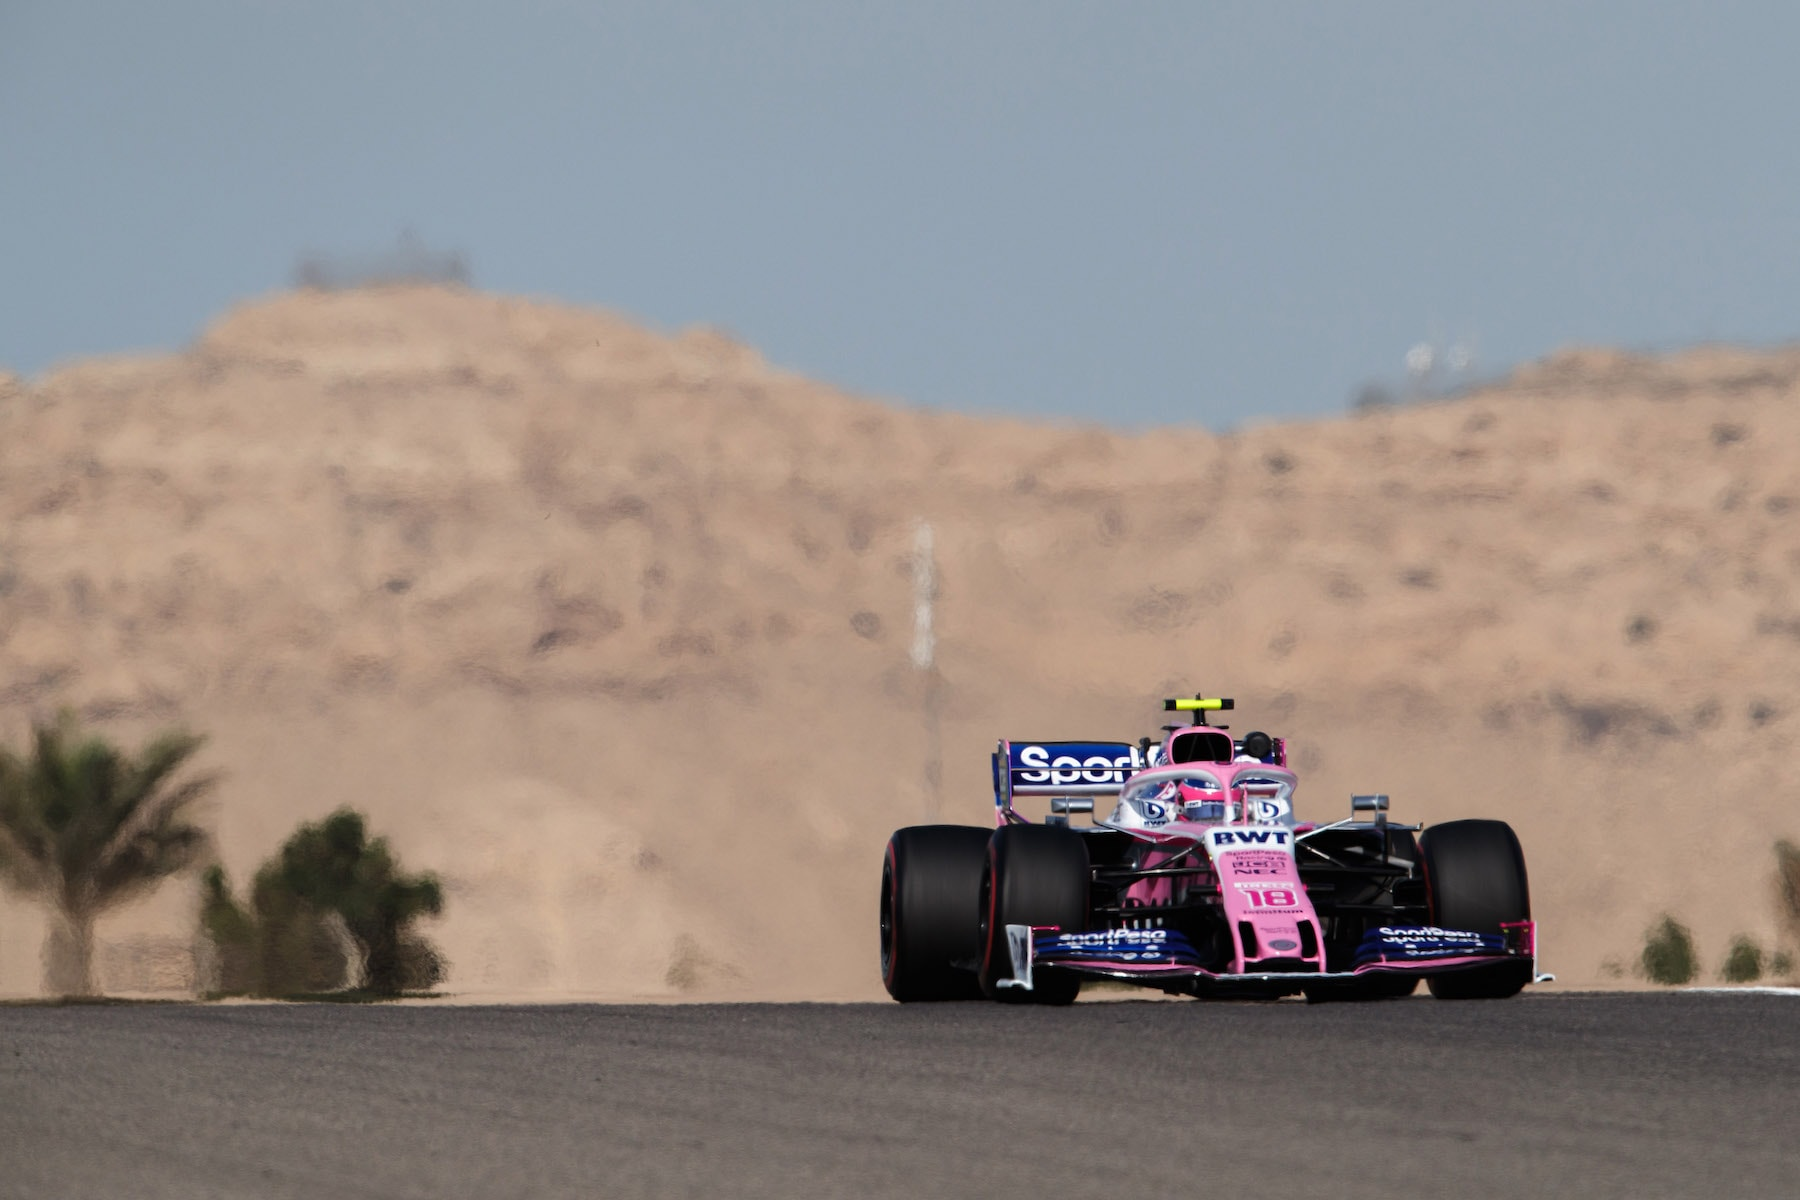 1 2019 Lance Stroll | Racing Point RP19 | 2019 Bahrain GP FP1 1 copy.jpg